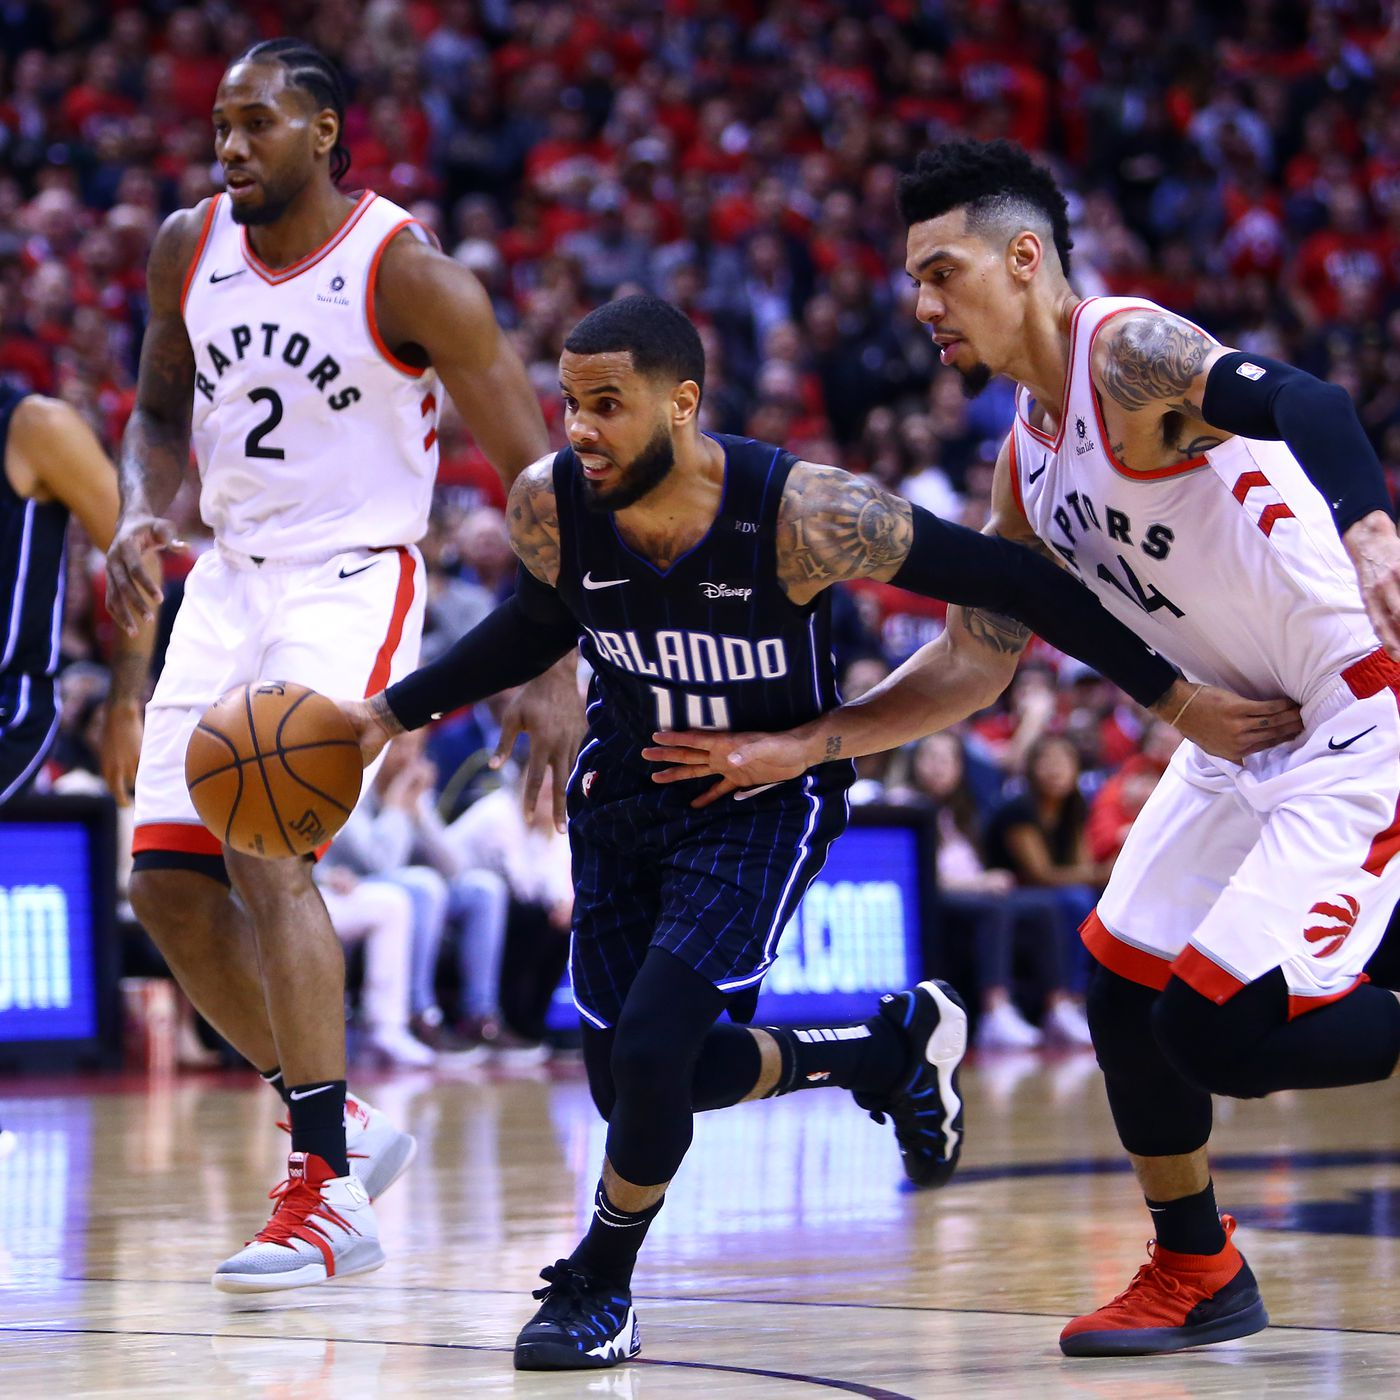 Flipboard: Game 1 Stat Analysis: What Did The Toronto